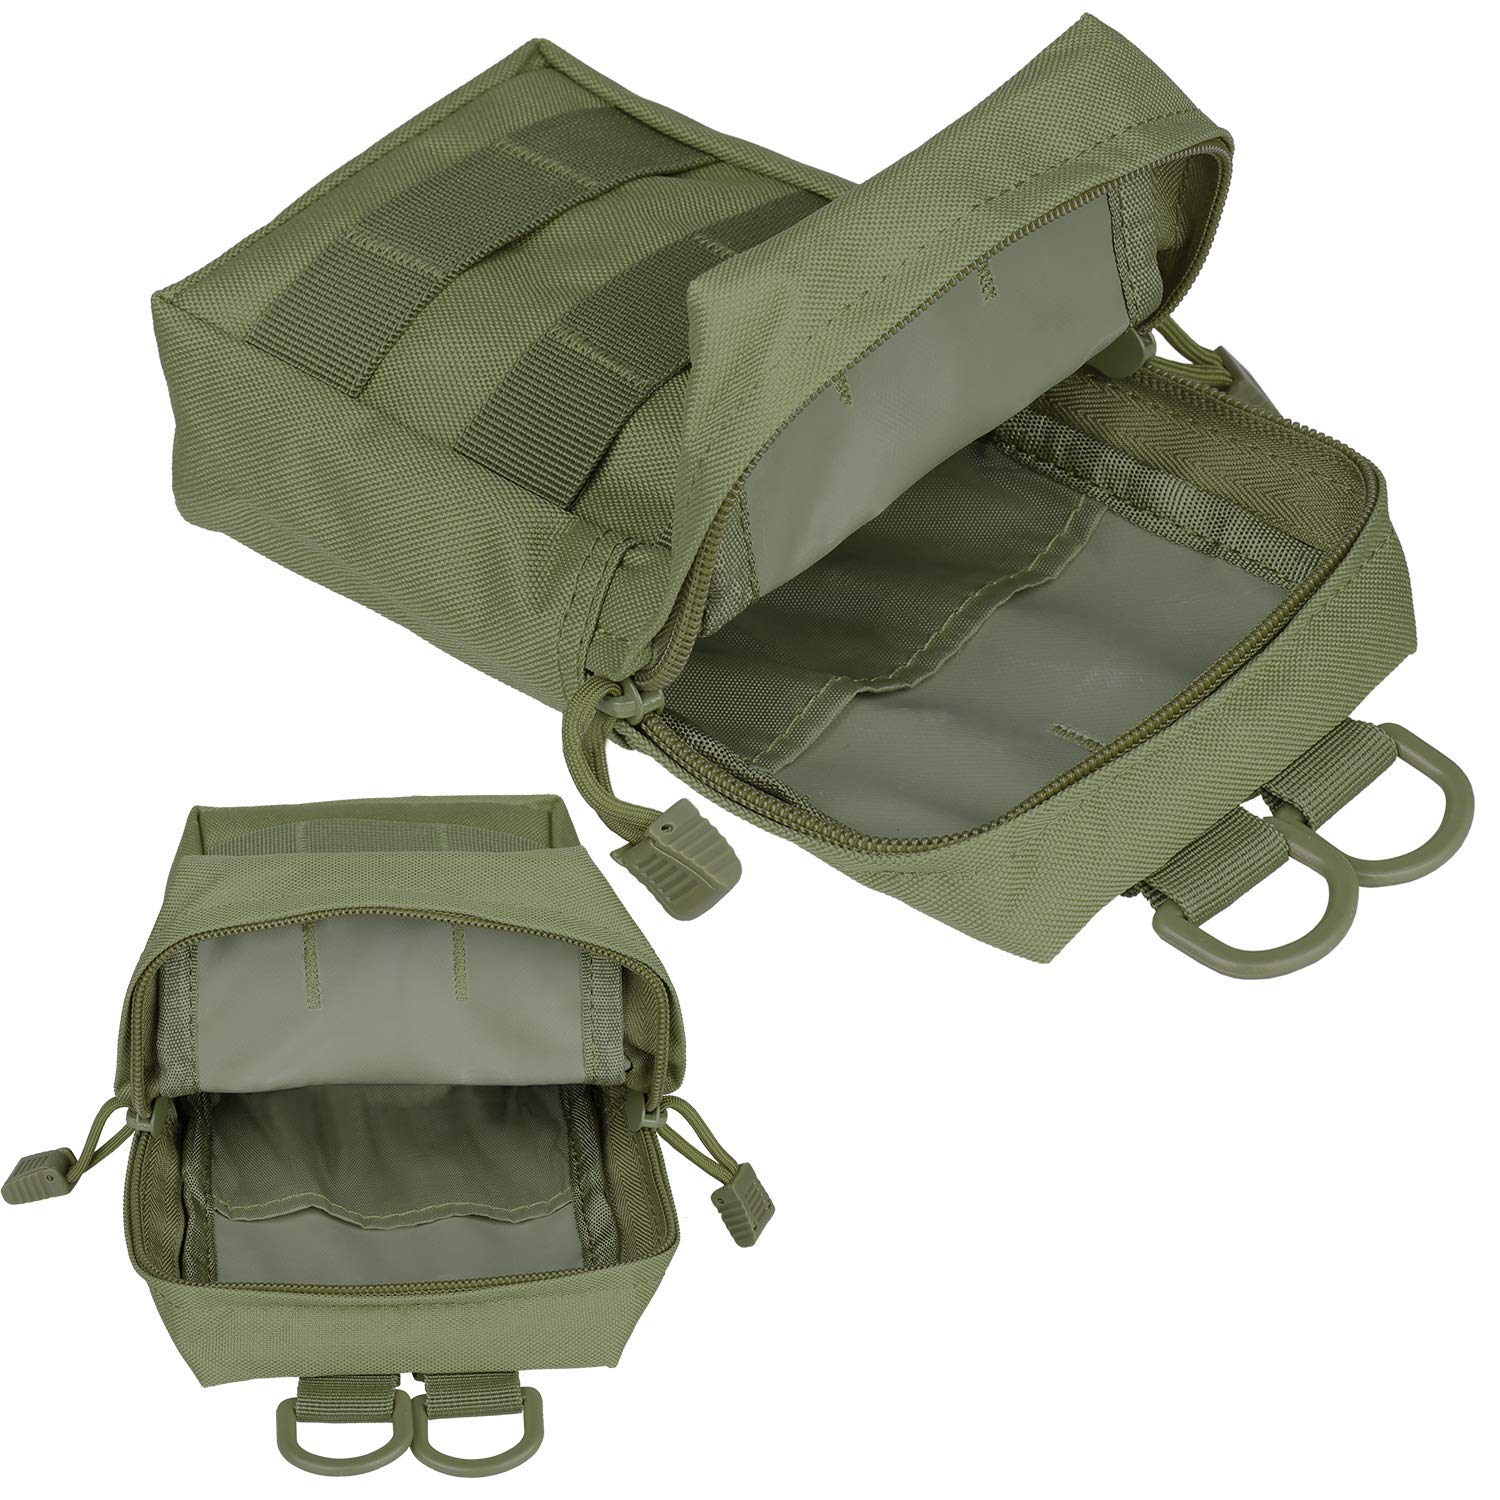 GOHIKING Molle Pouch 2 Pack Tactical Compact EDC Utility Gadget Waist Bag  with 10 Pack Multipurpose D-Ring Grimloc Locking Hook